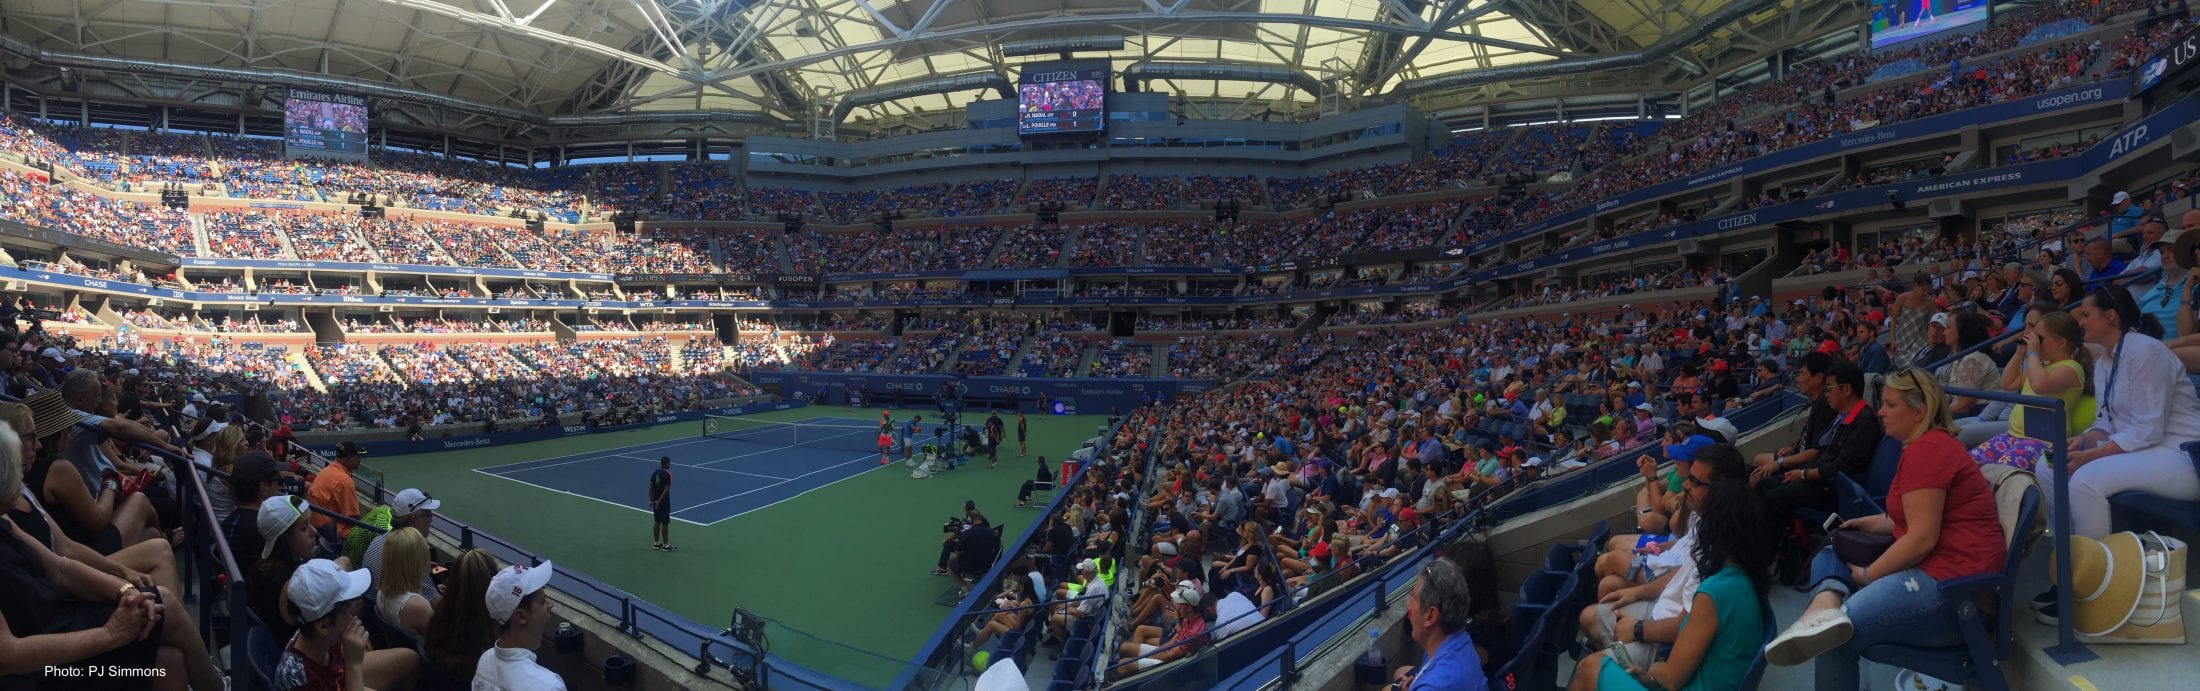 A Serious Tennis Fan\'s Top 10 Tips for the 2019 US Open (Tickets & More)